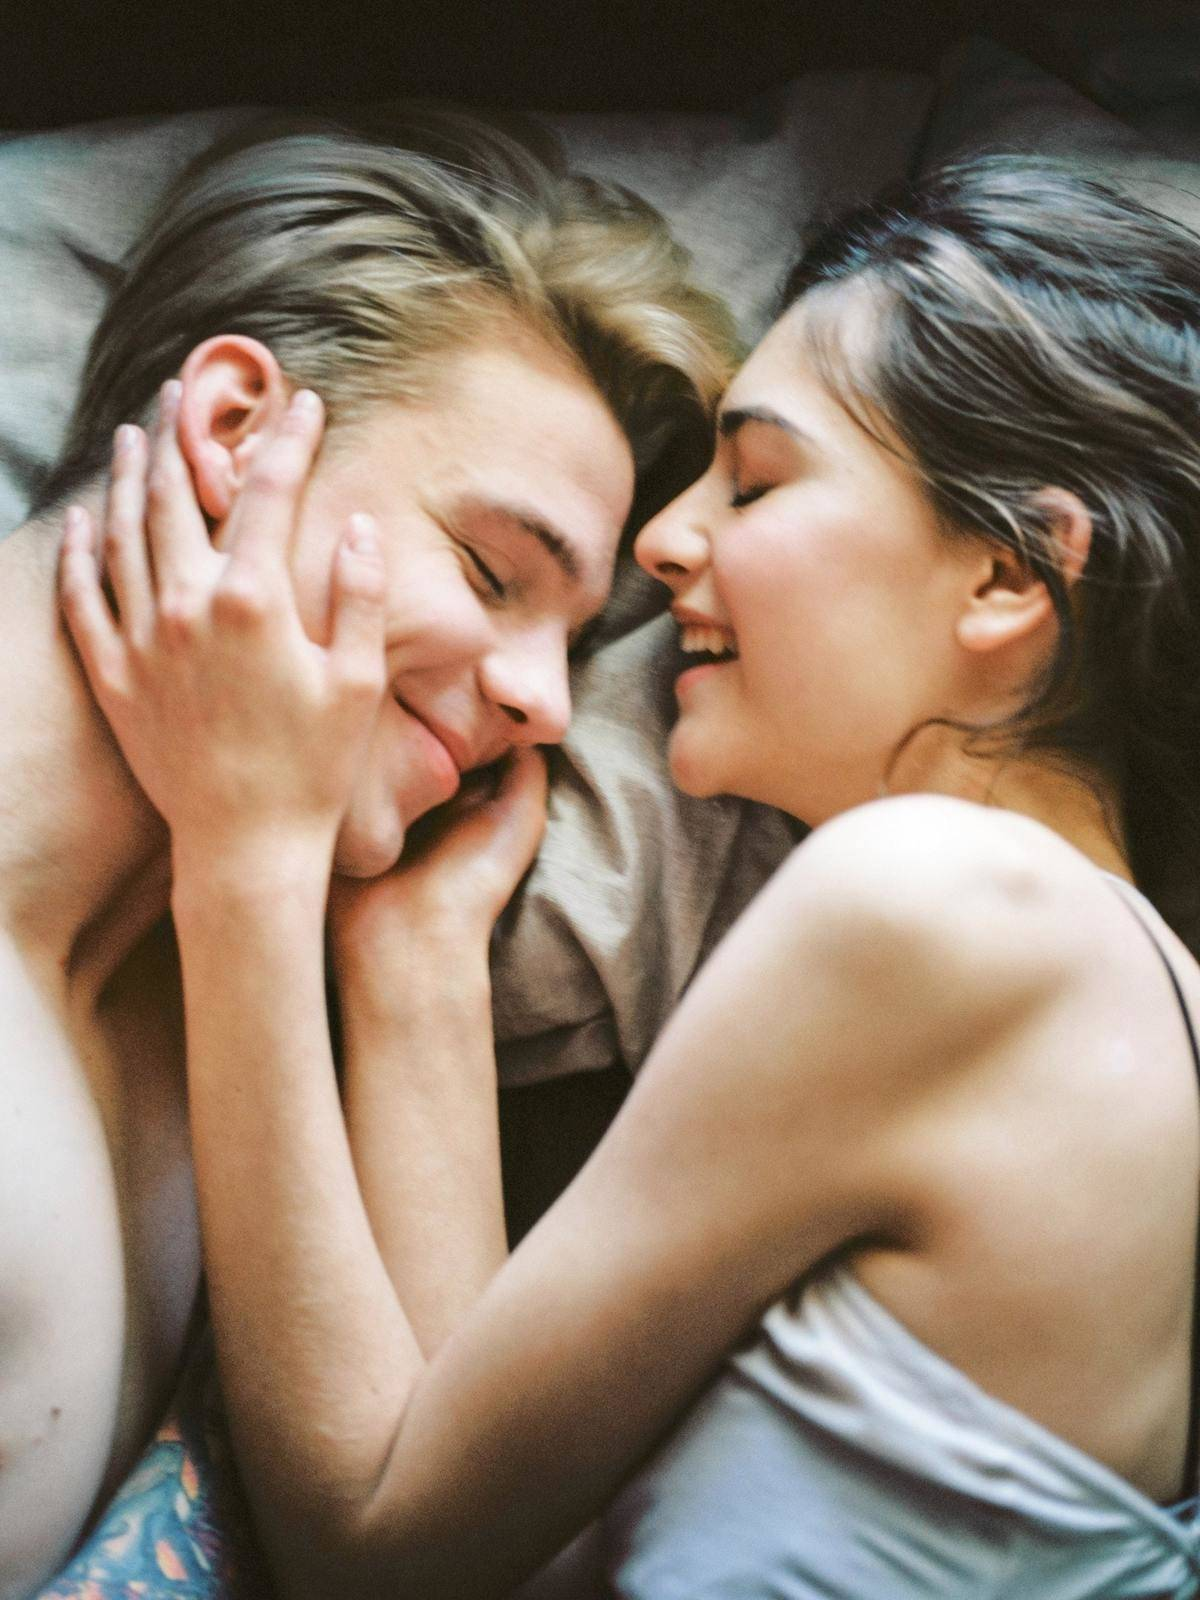 Couple cuddles in bed laughing